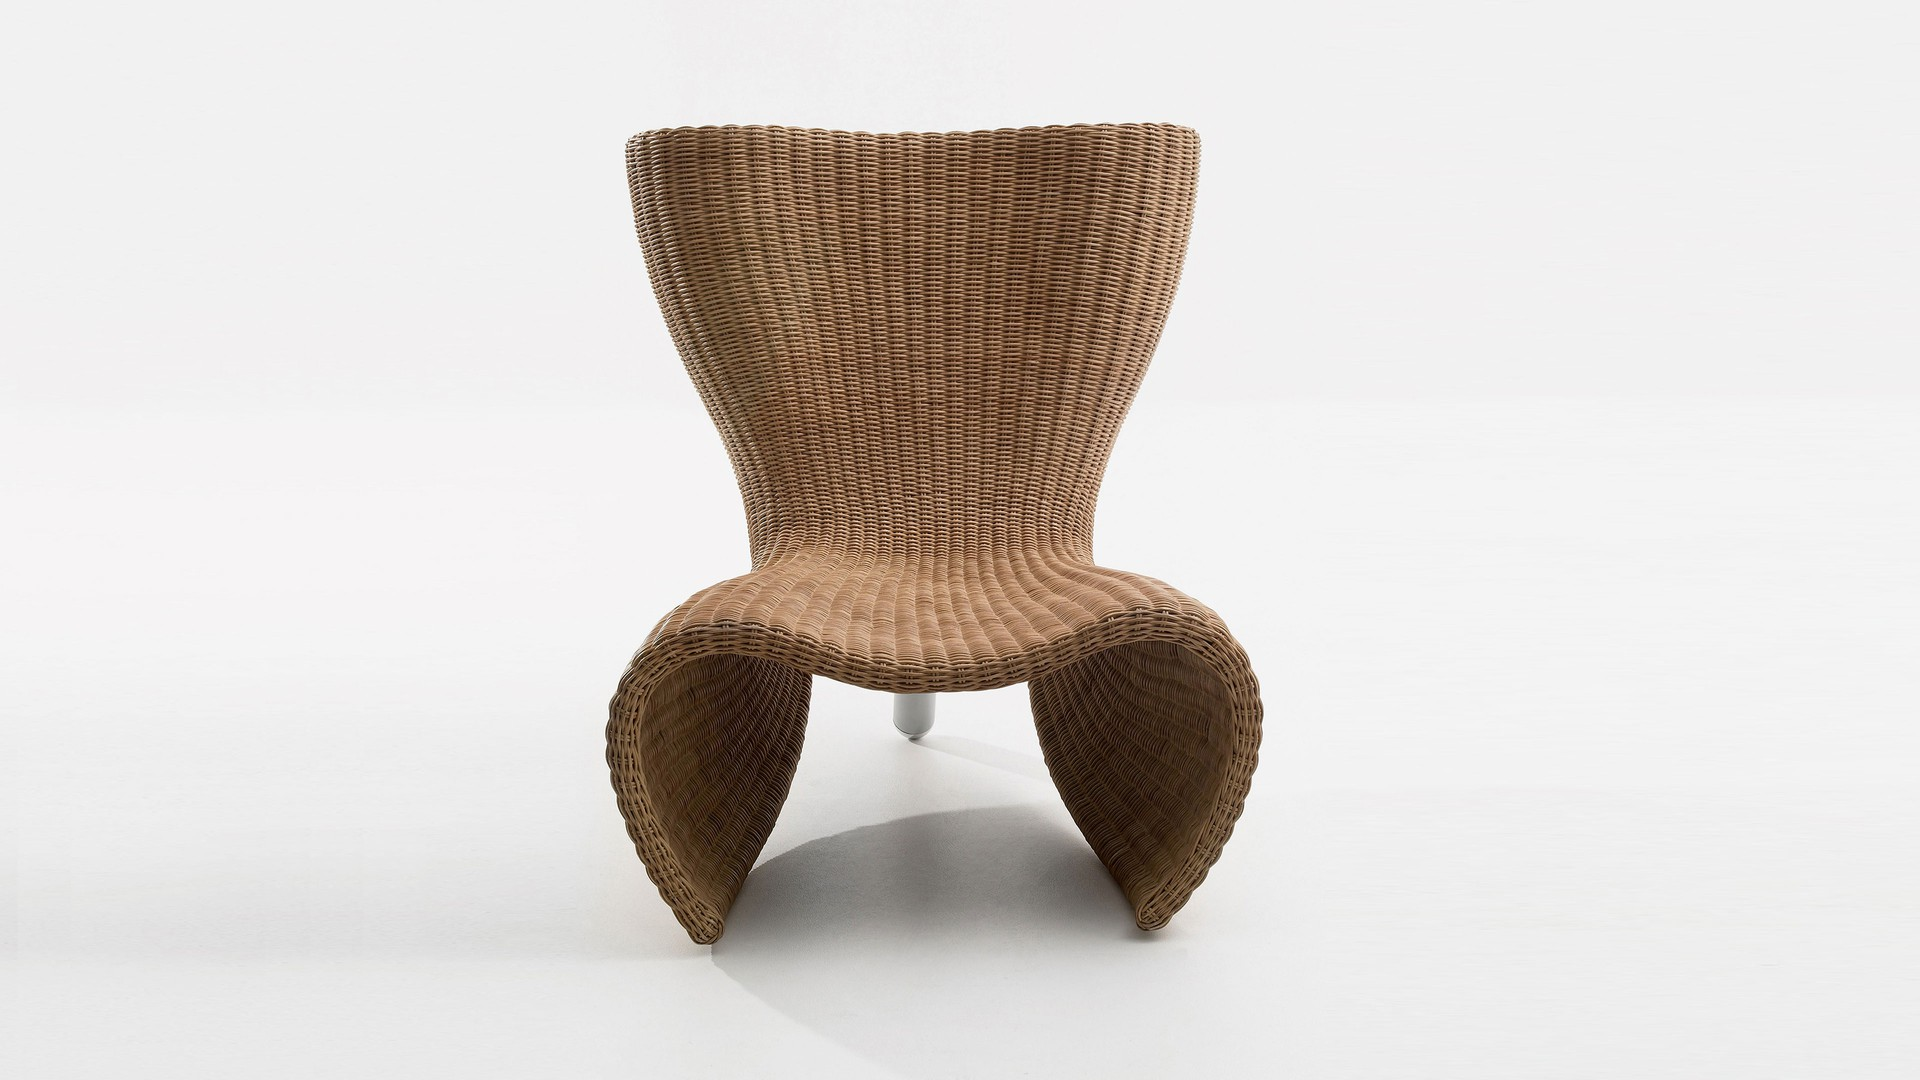 Wicker Chair and Lounge